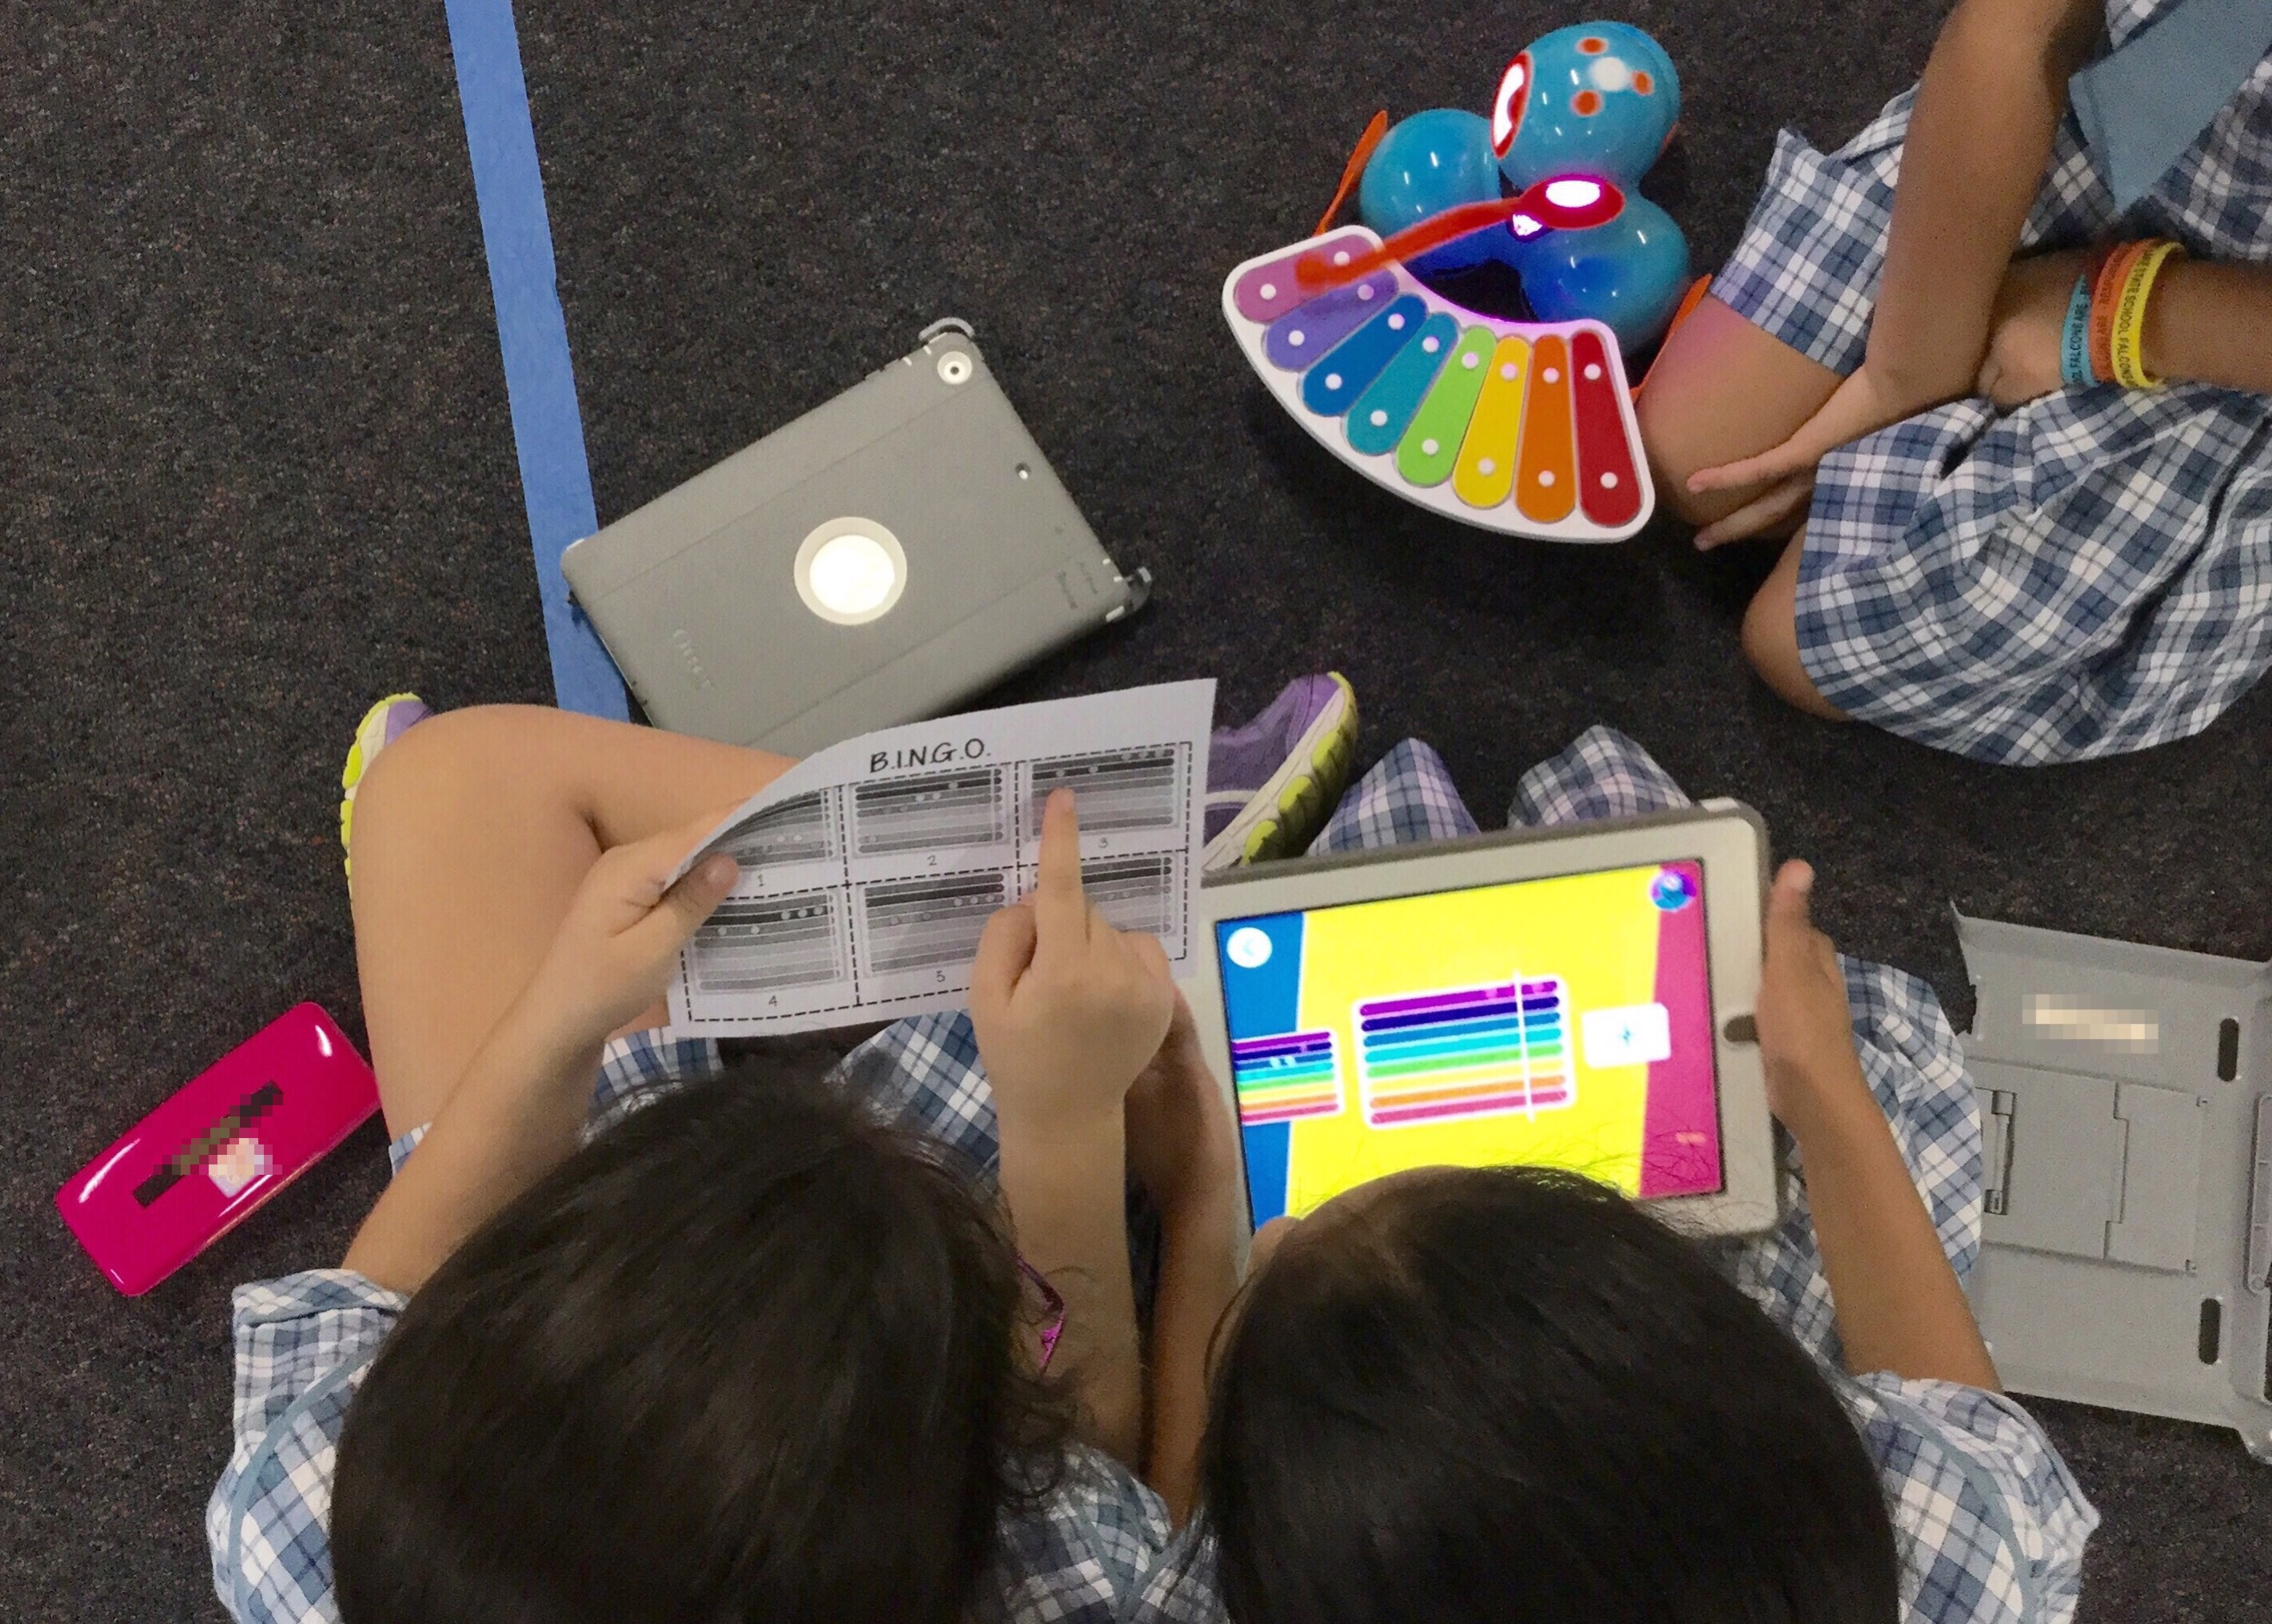 Students program Dash to play B.I.N.G.O. In the Xylo app